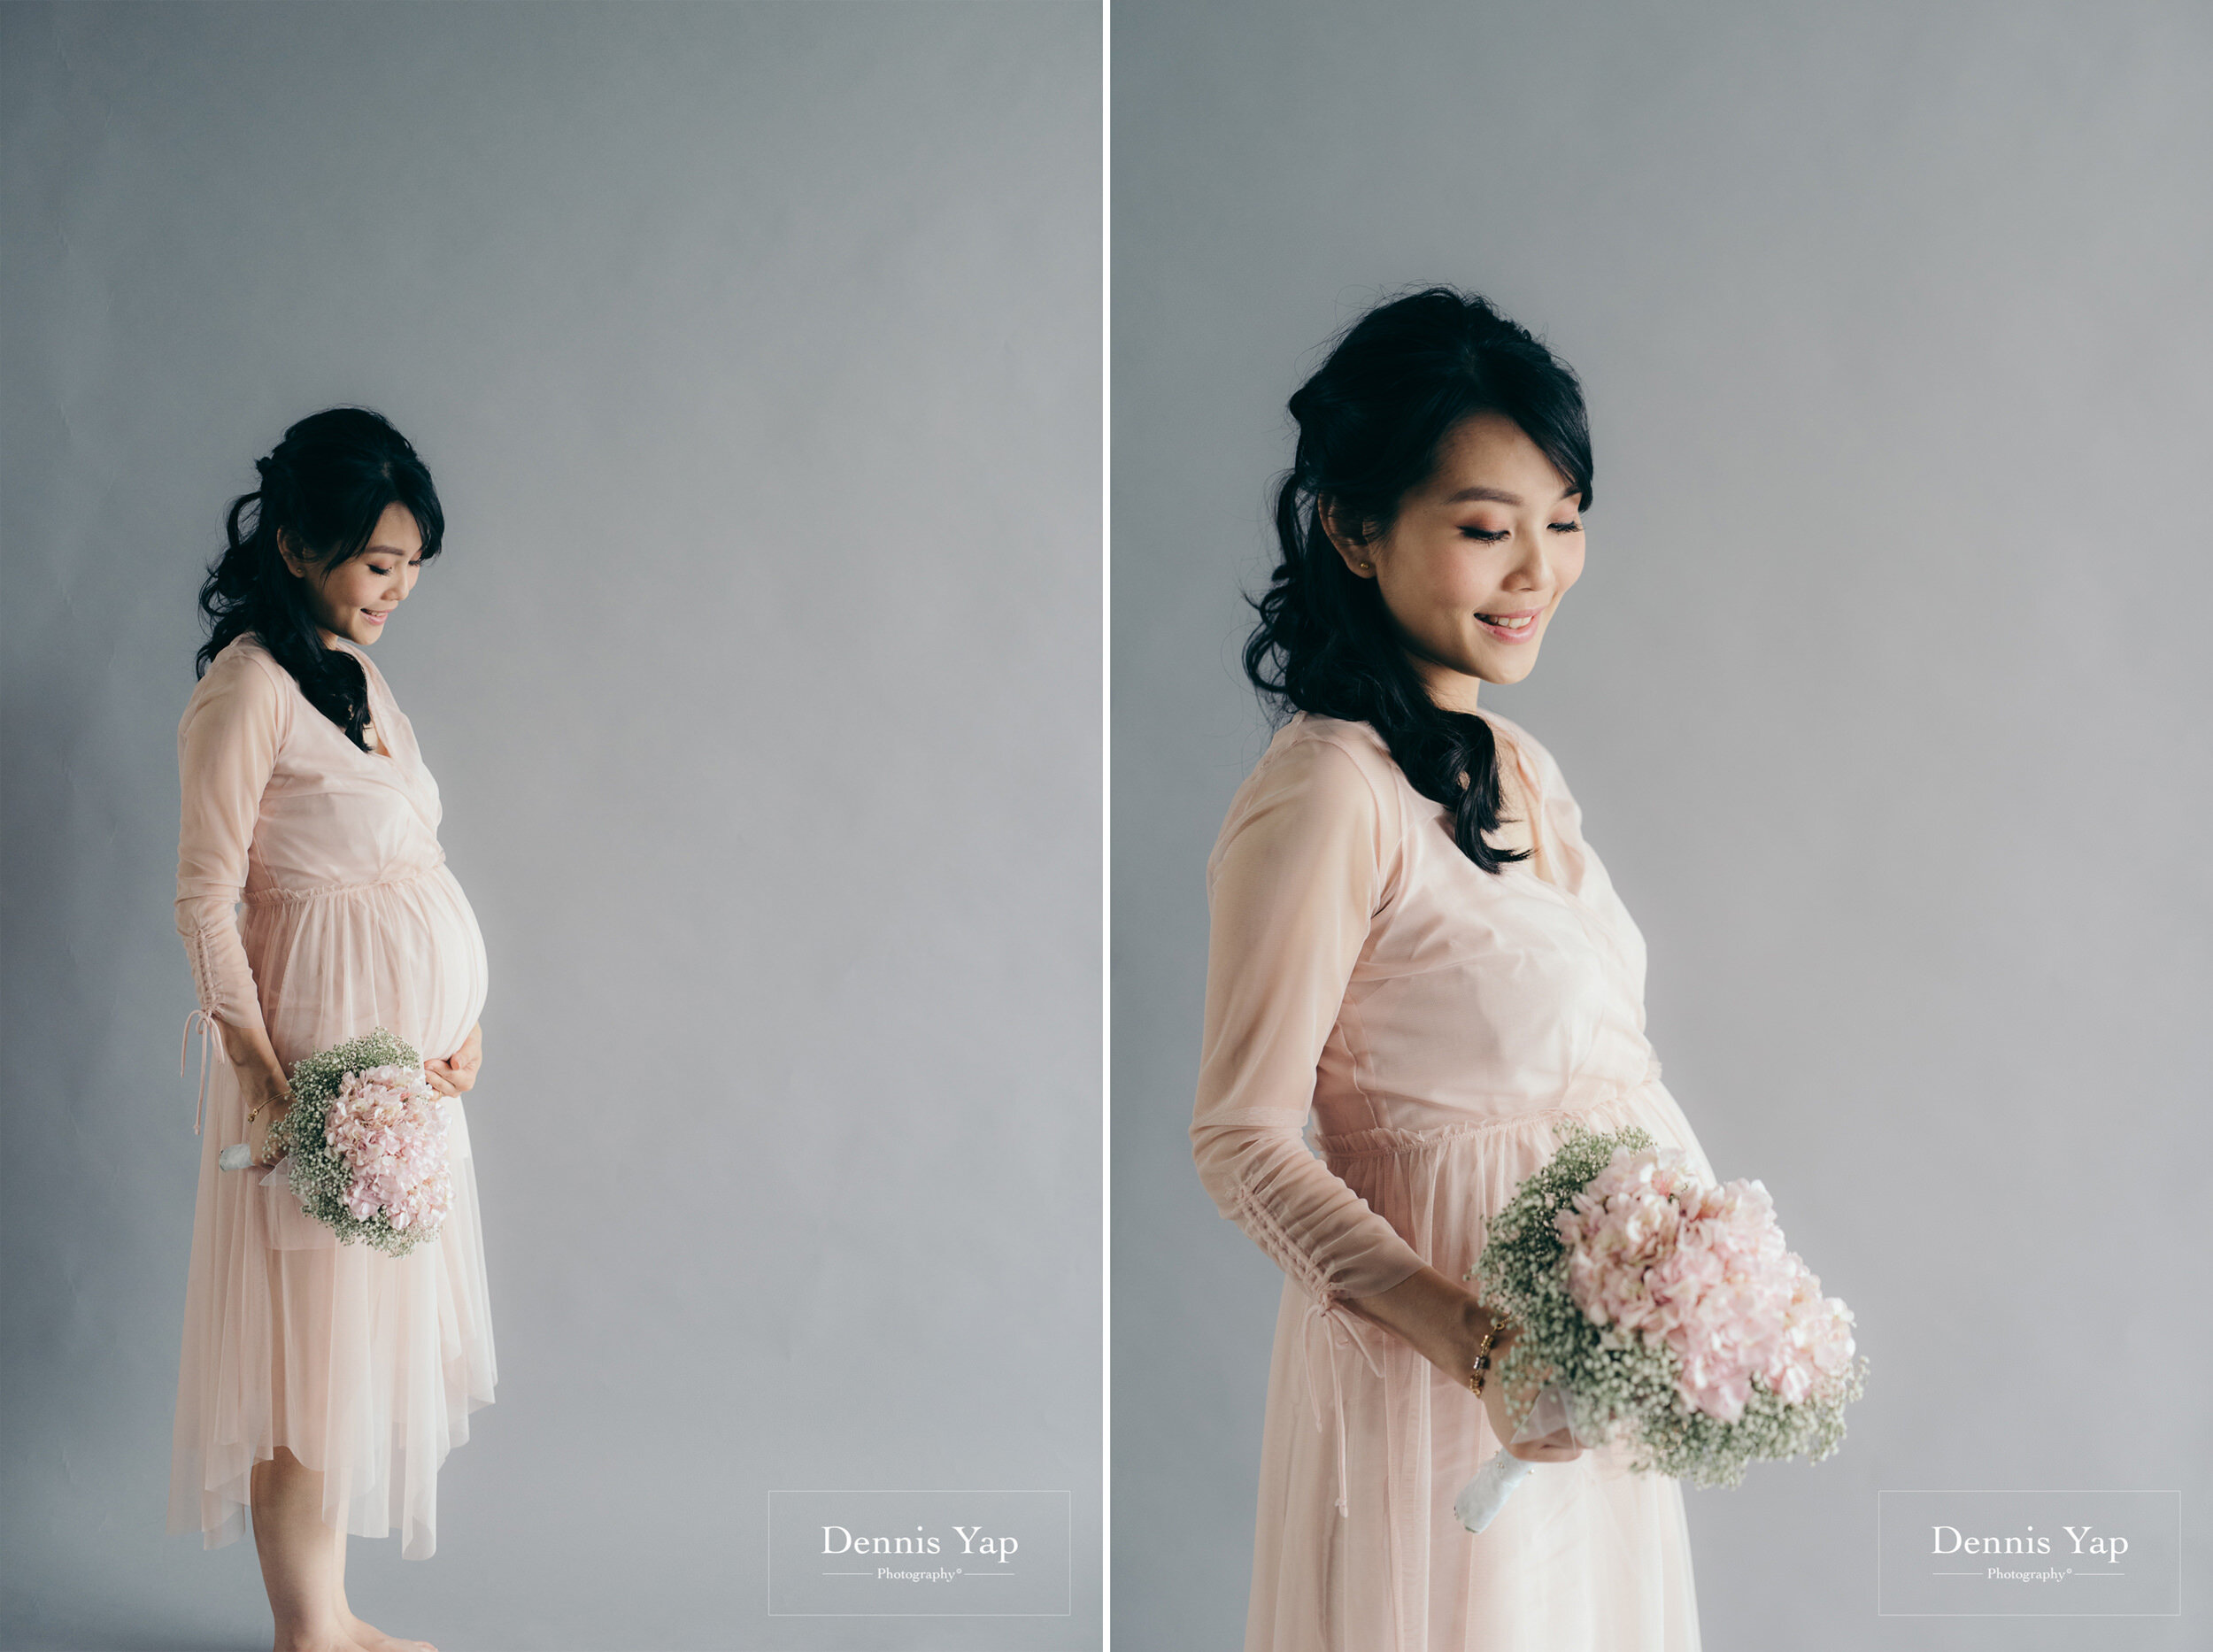 hwee jenna family maternity portrait portrait dennis yap photography beloved studio indoor-120.jpg